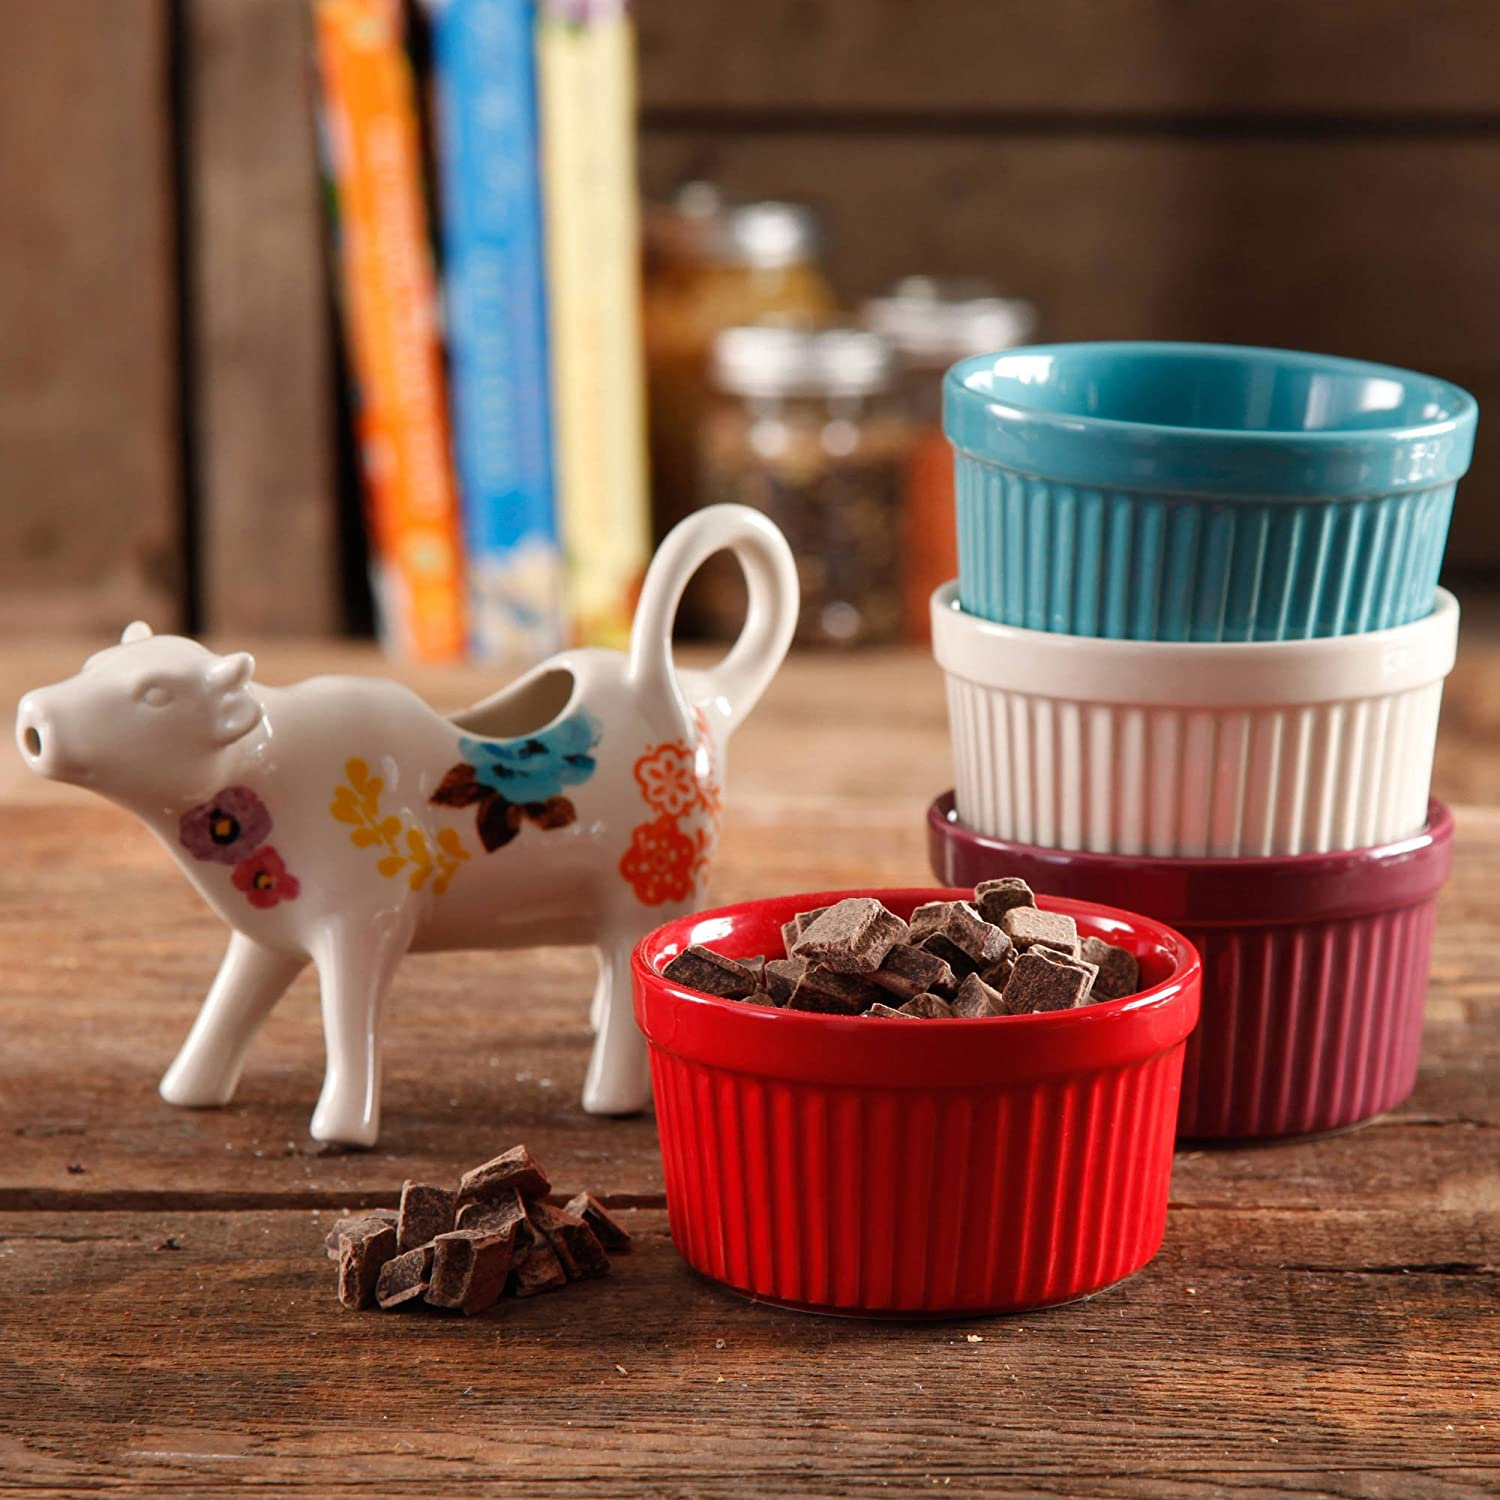 The Pioneer Woman Flea Market 5-Piece Serving Set, 4 Ramekins in Assorted Colors and Cow Creamer, Floral